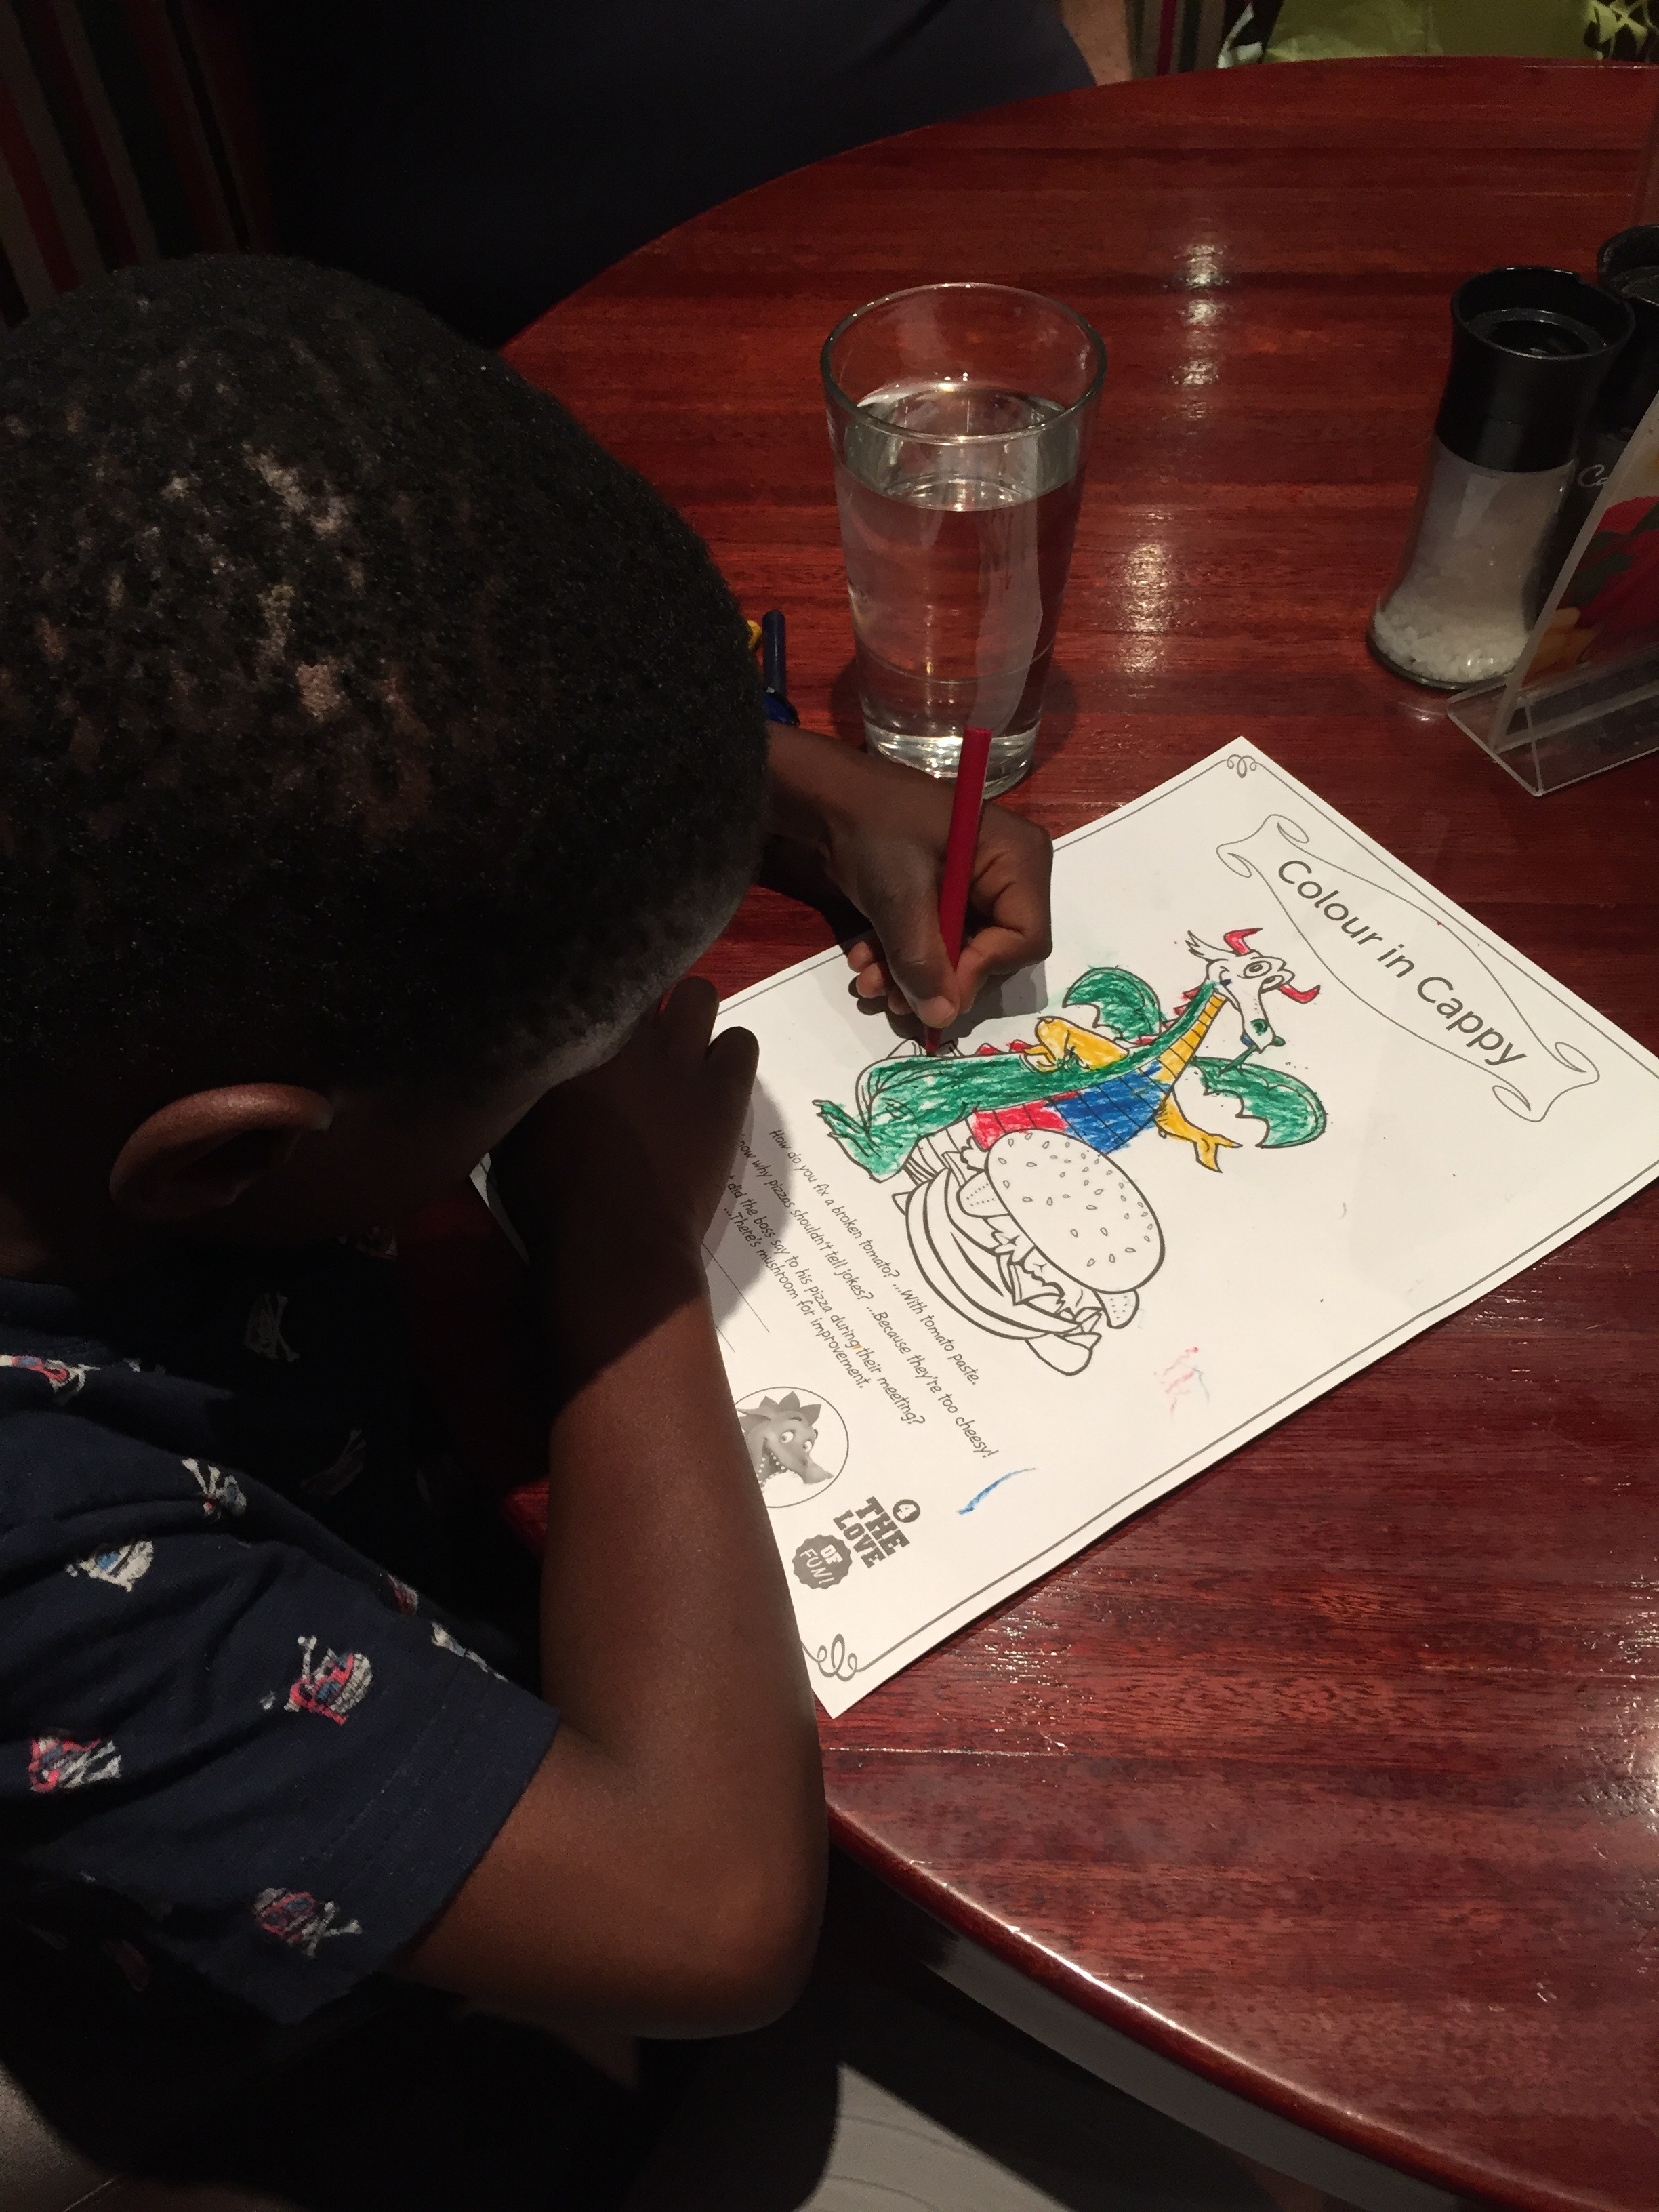 Coloring at dinner. He's wearing a new t-shirt with scuba skull and crossbones.